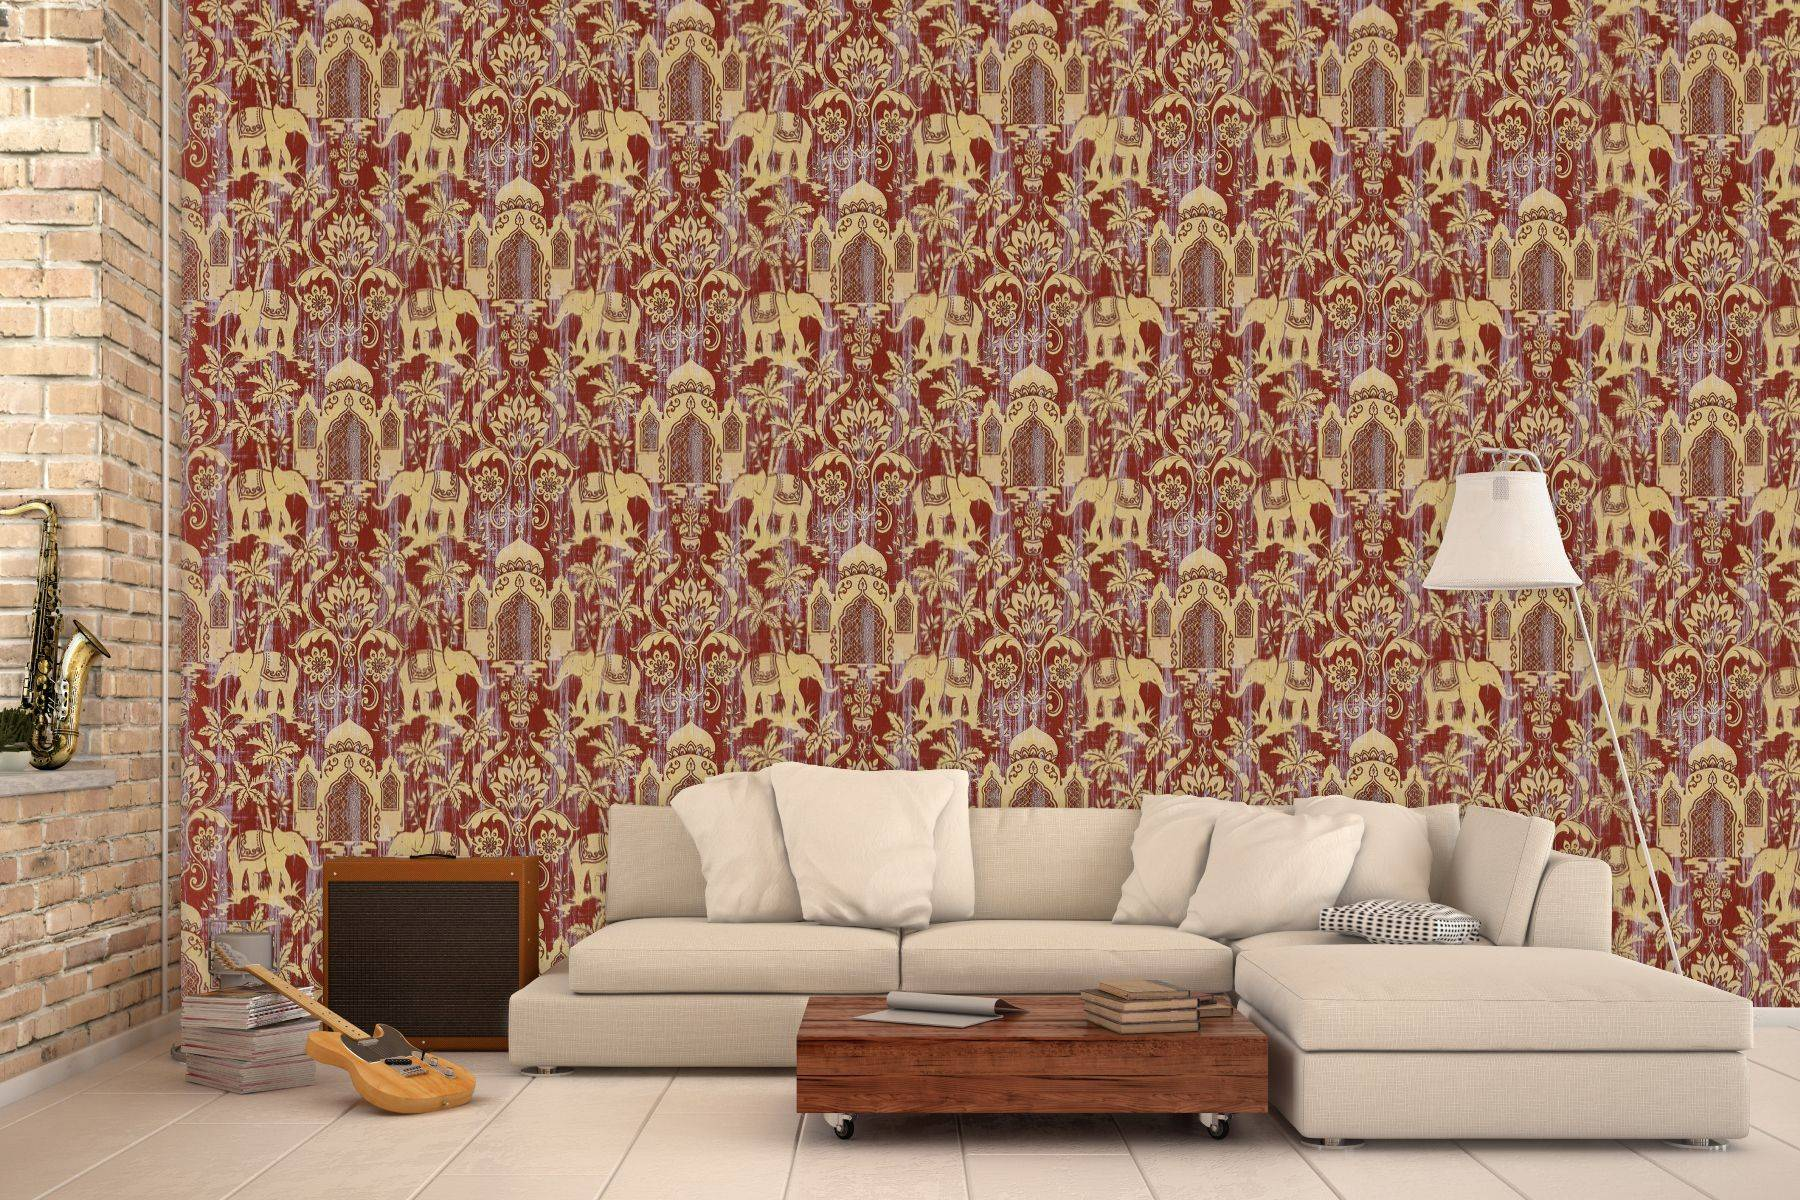 Interior Xpression PVC Designs Wallpapers SDL 1 168aa